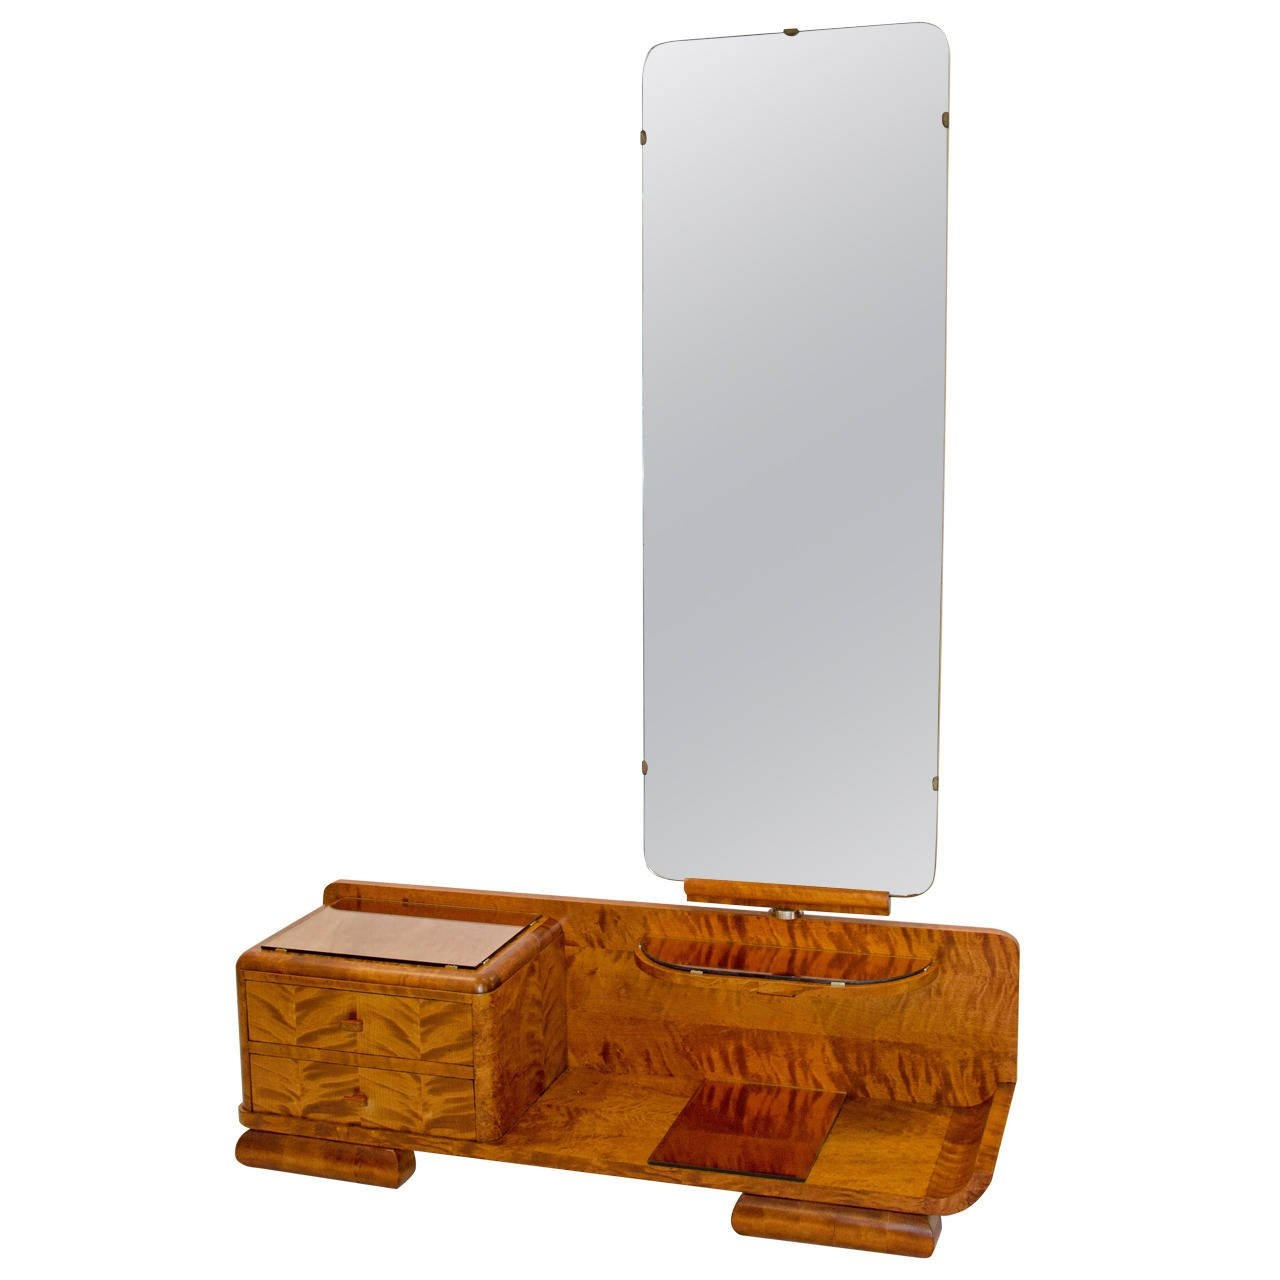 French Art Deco Vanity Full Length Cheval Dressing Mirror At 1stdibs Regarding Art Deco Full Length Mirror (View 10 of 15)